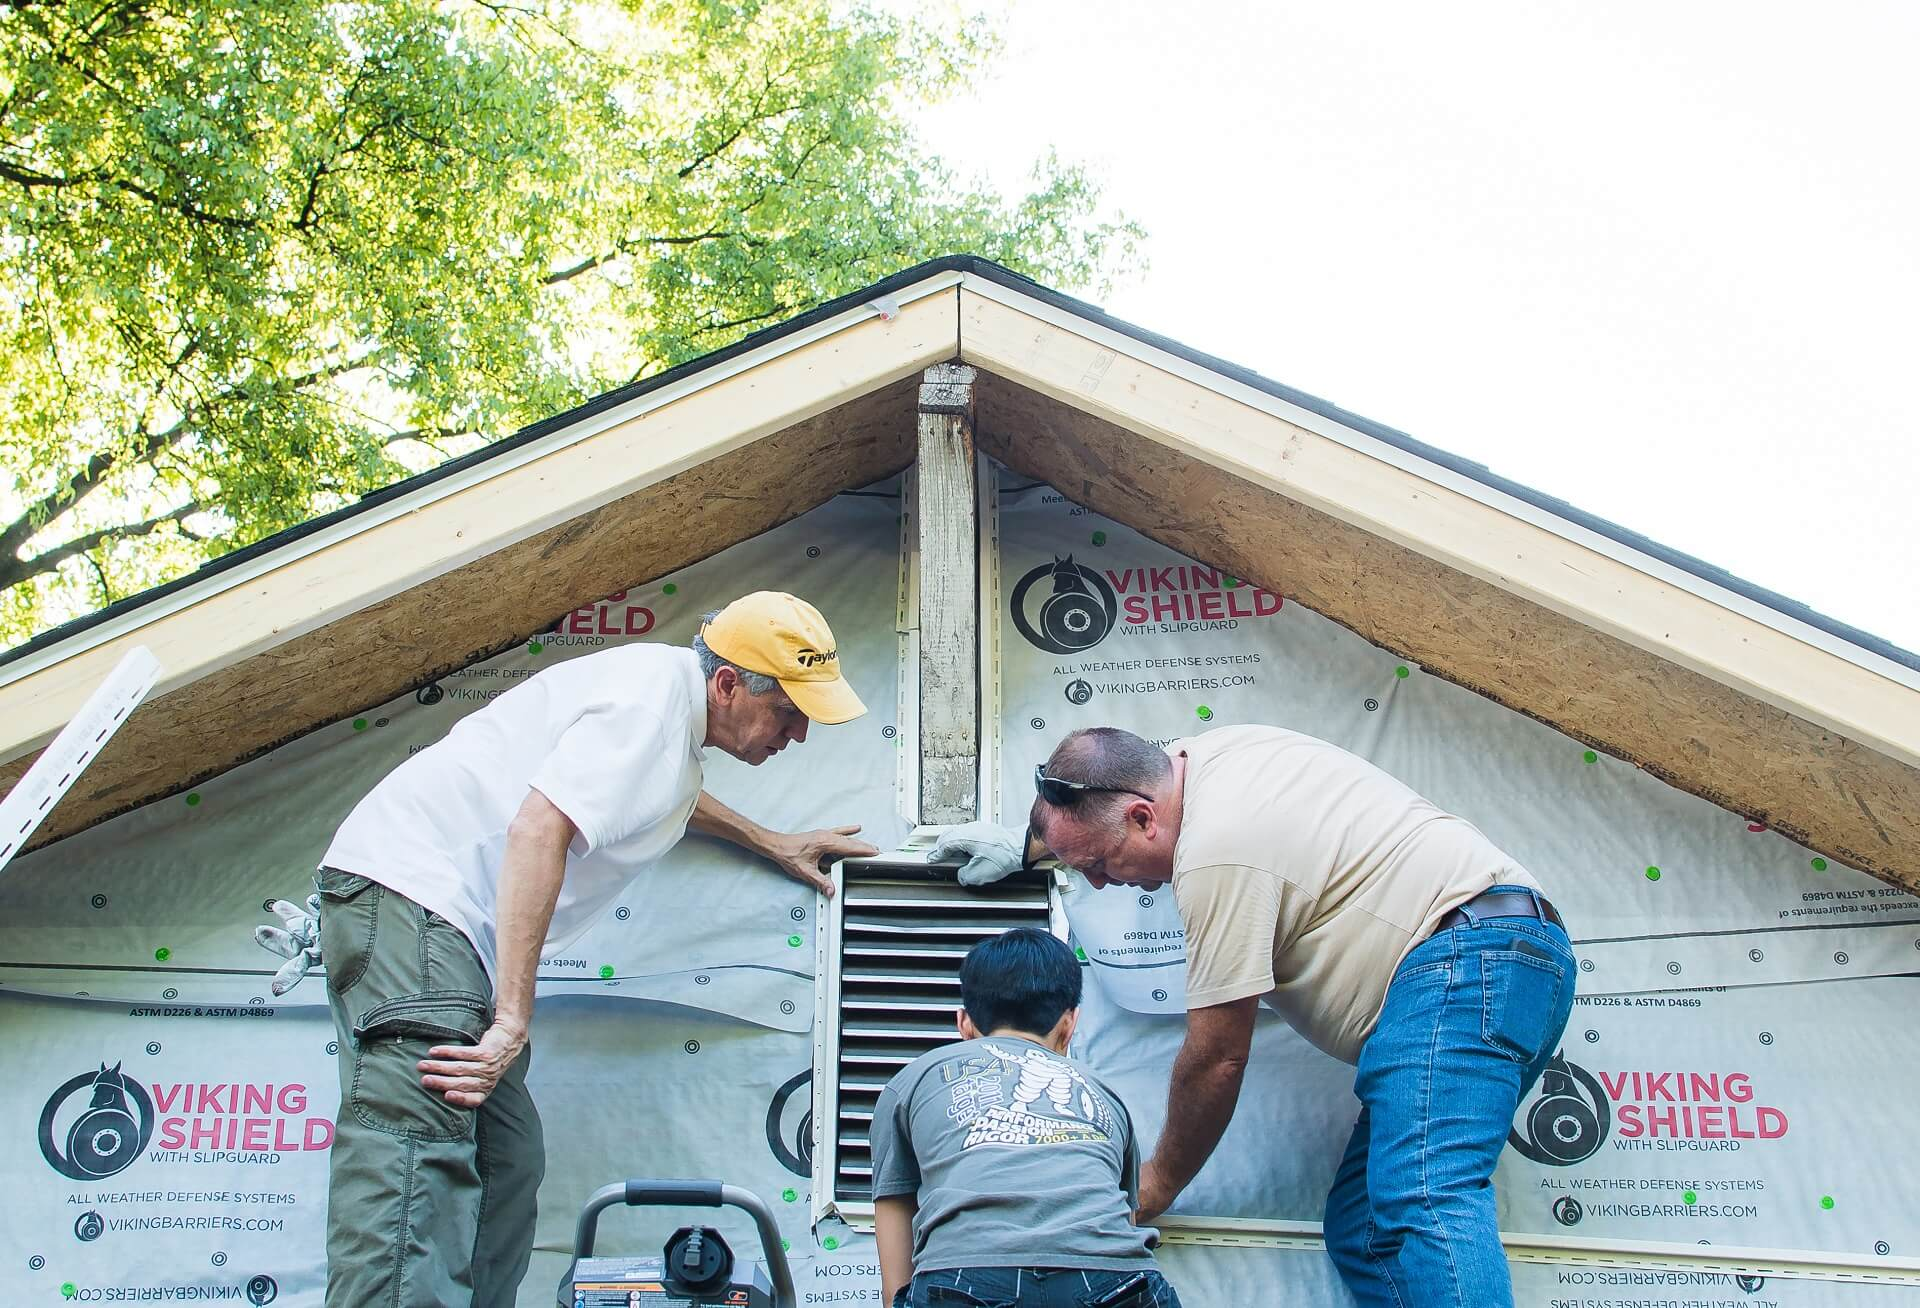 Rebuild Upstate receives $10,000 grant from Wells Fargo